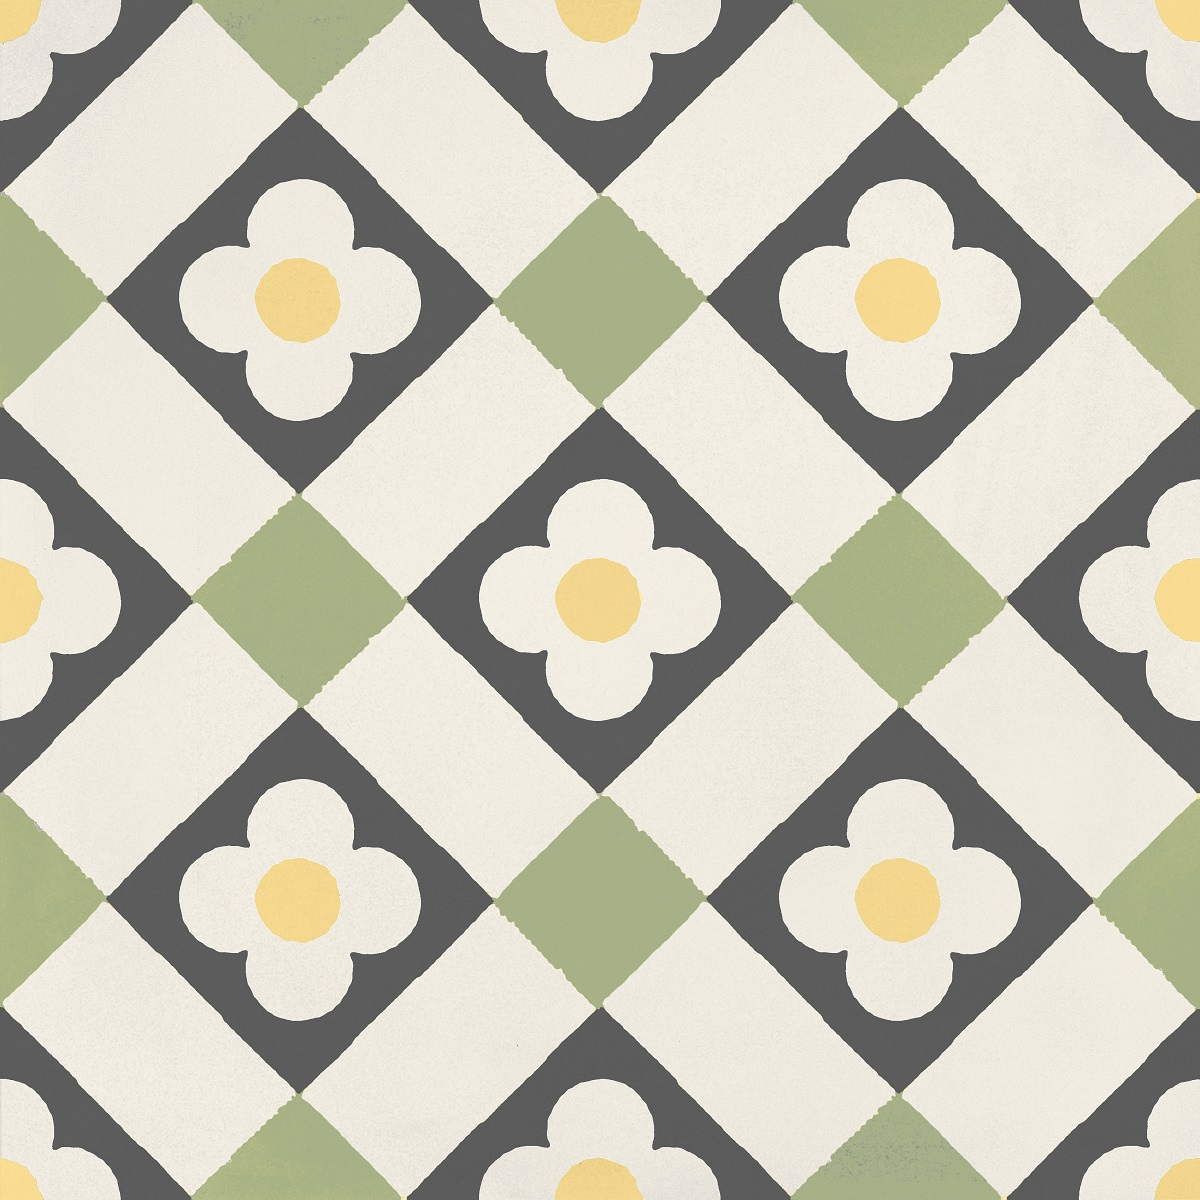 image/catalog/product_series_tiles/2150/FUN_FLOWERS_Verde_20x20_03_sp1.jpg